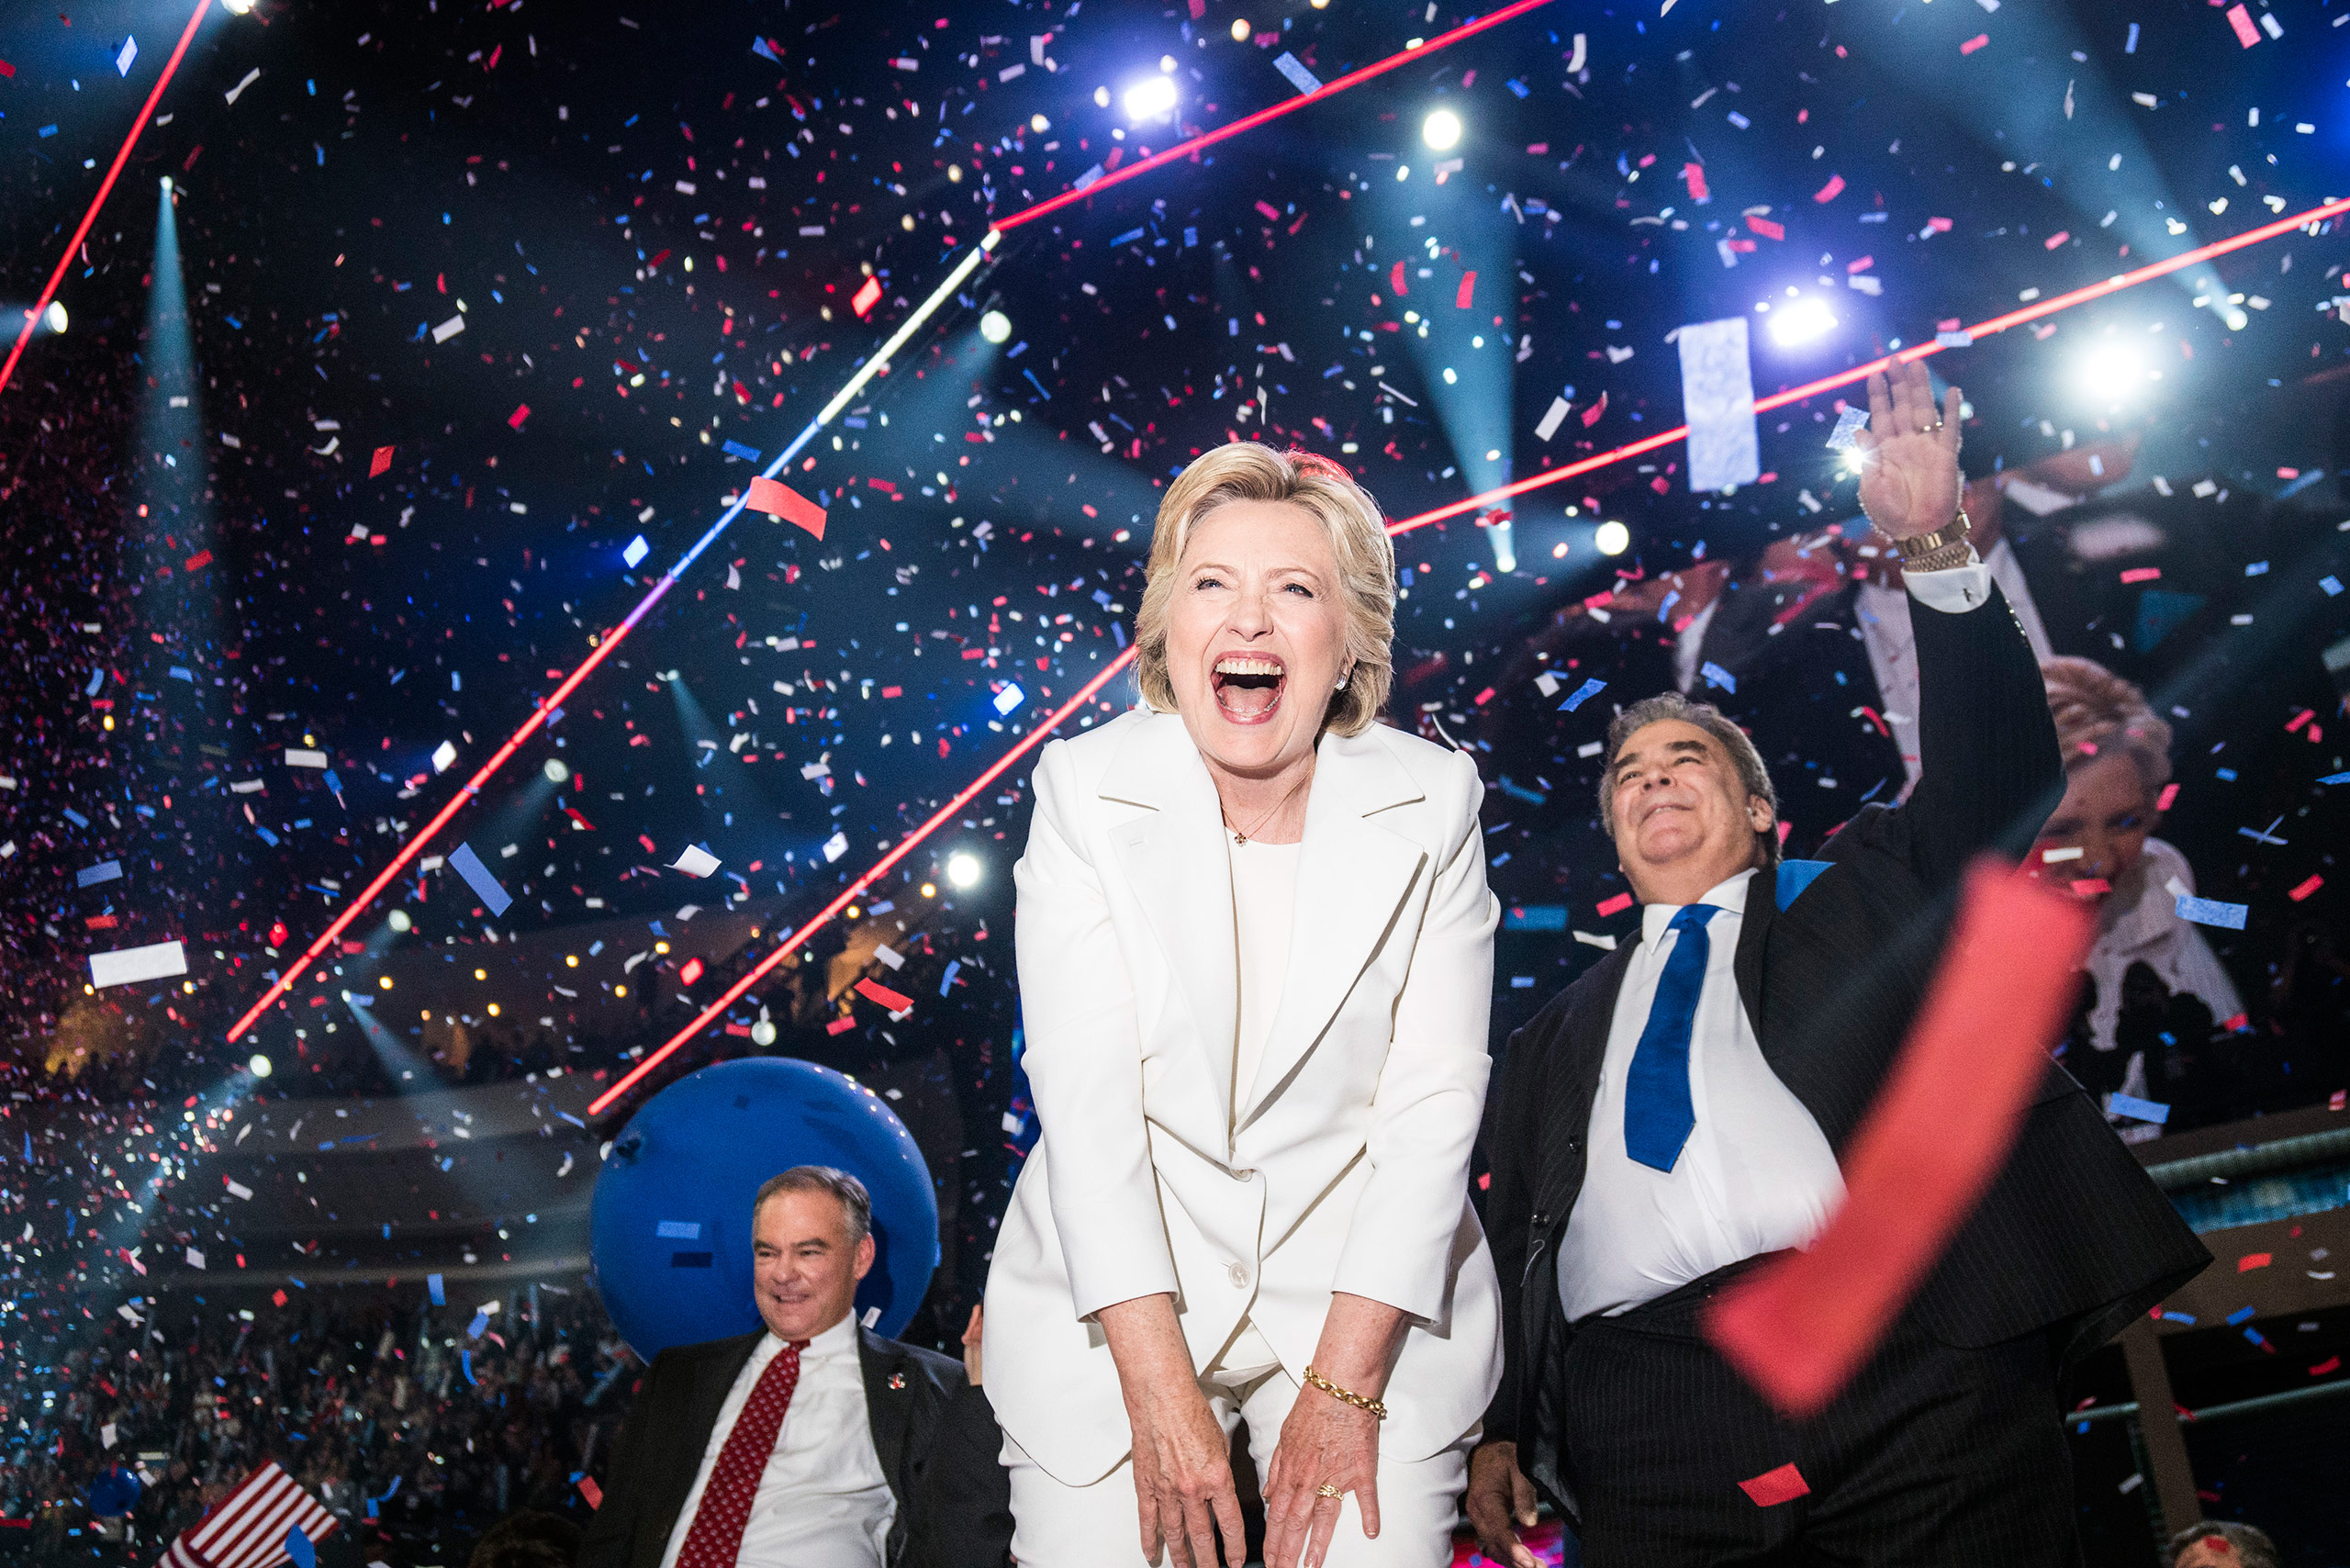 An ecstatic Hillary Clinton celebrates at the conclusion of the Democratic National Convention where she accepted the nomination in Philadelphia, on July 28, 2016.From  The 82 Most Unforgettable Photos From the Election